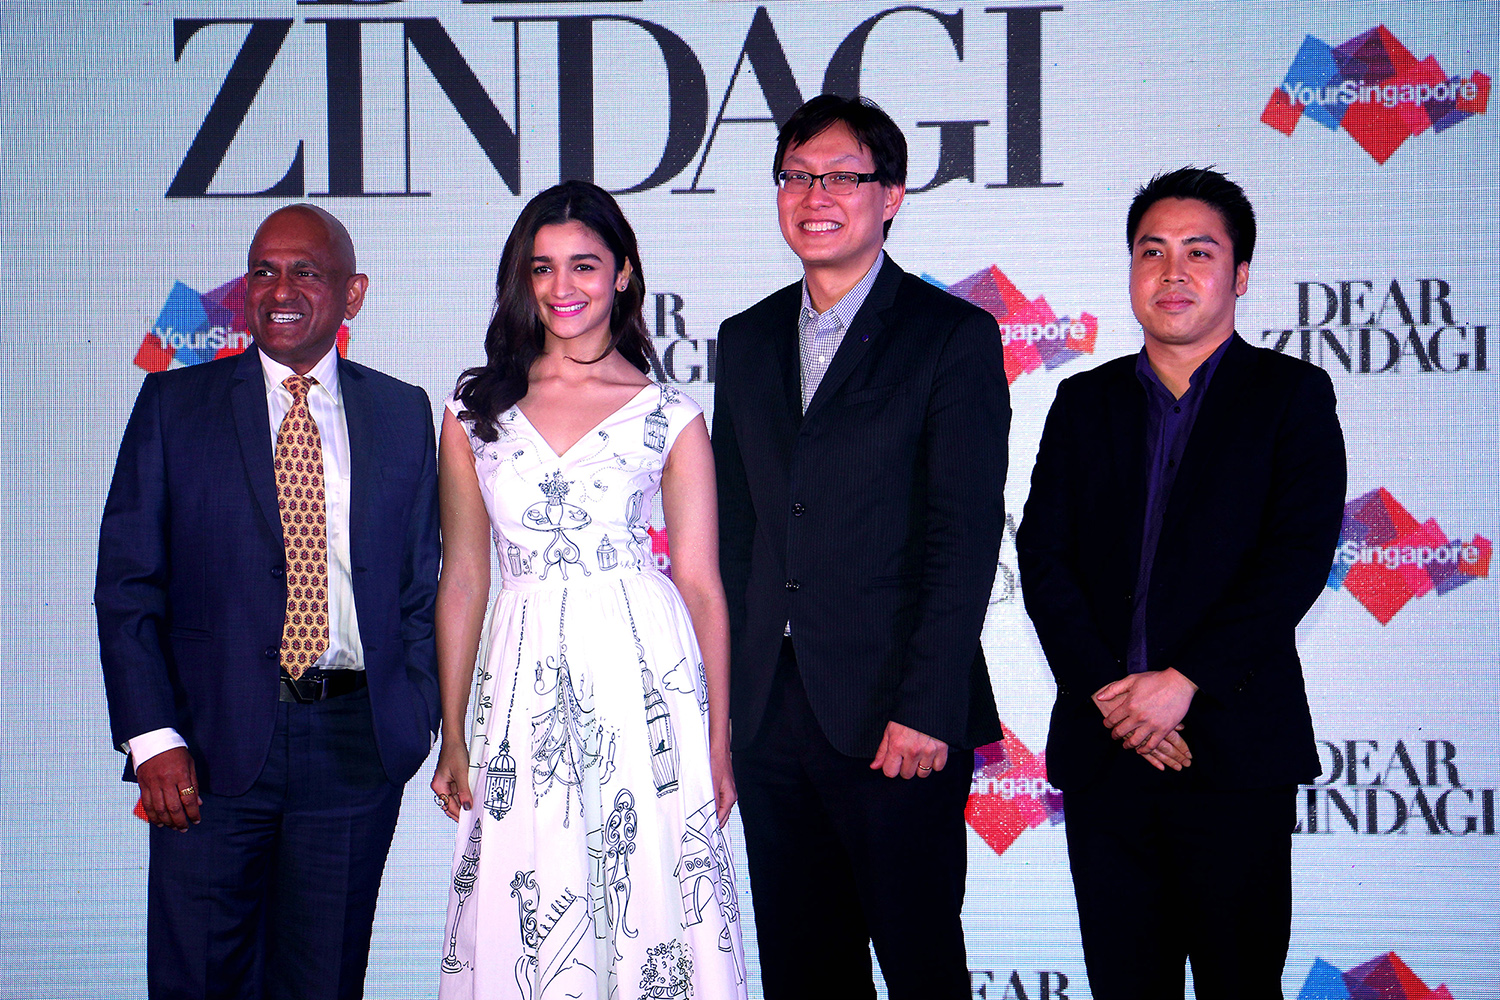 Singapore Tourism Board associates with the launch of the film 'Dear Zindagi'